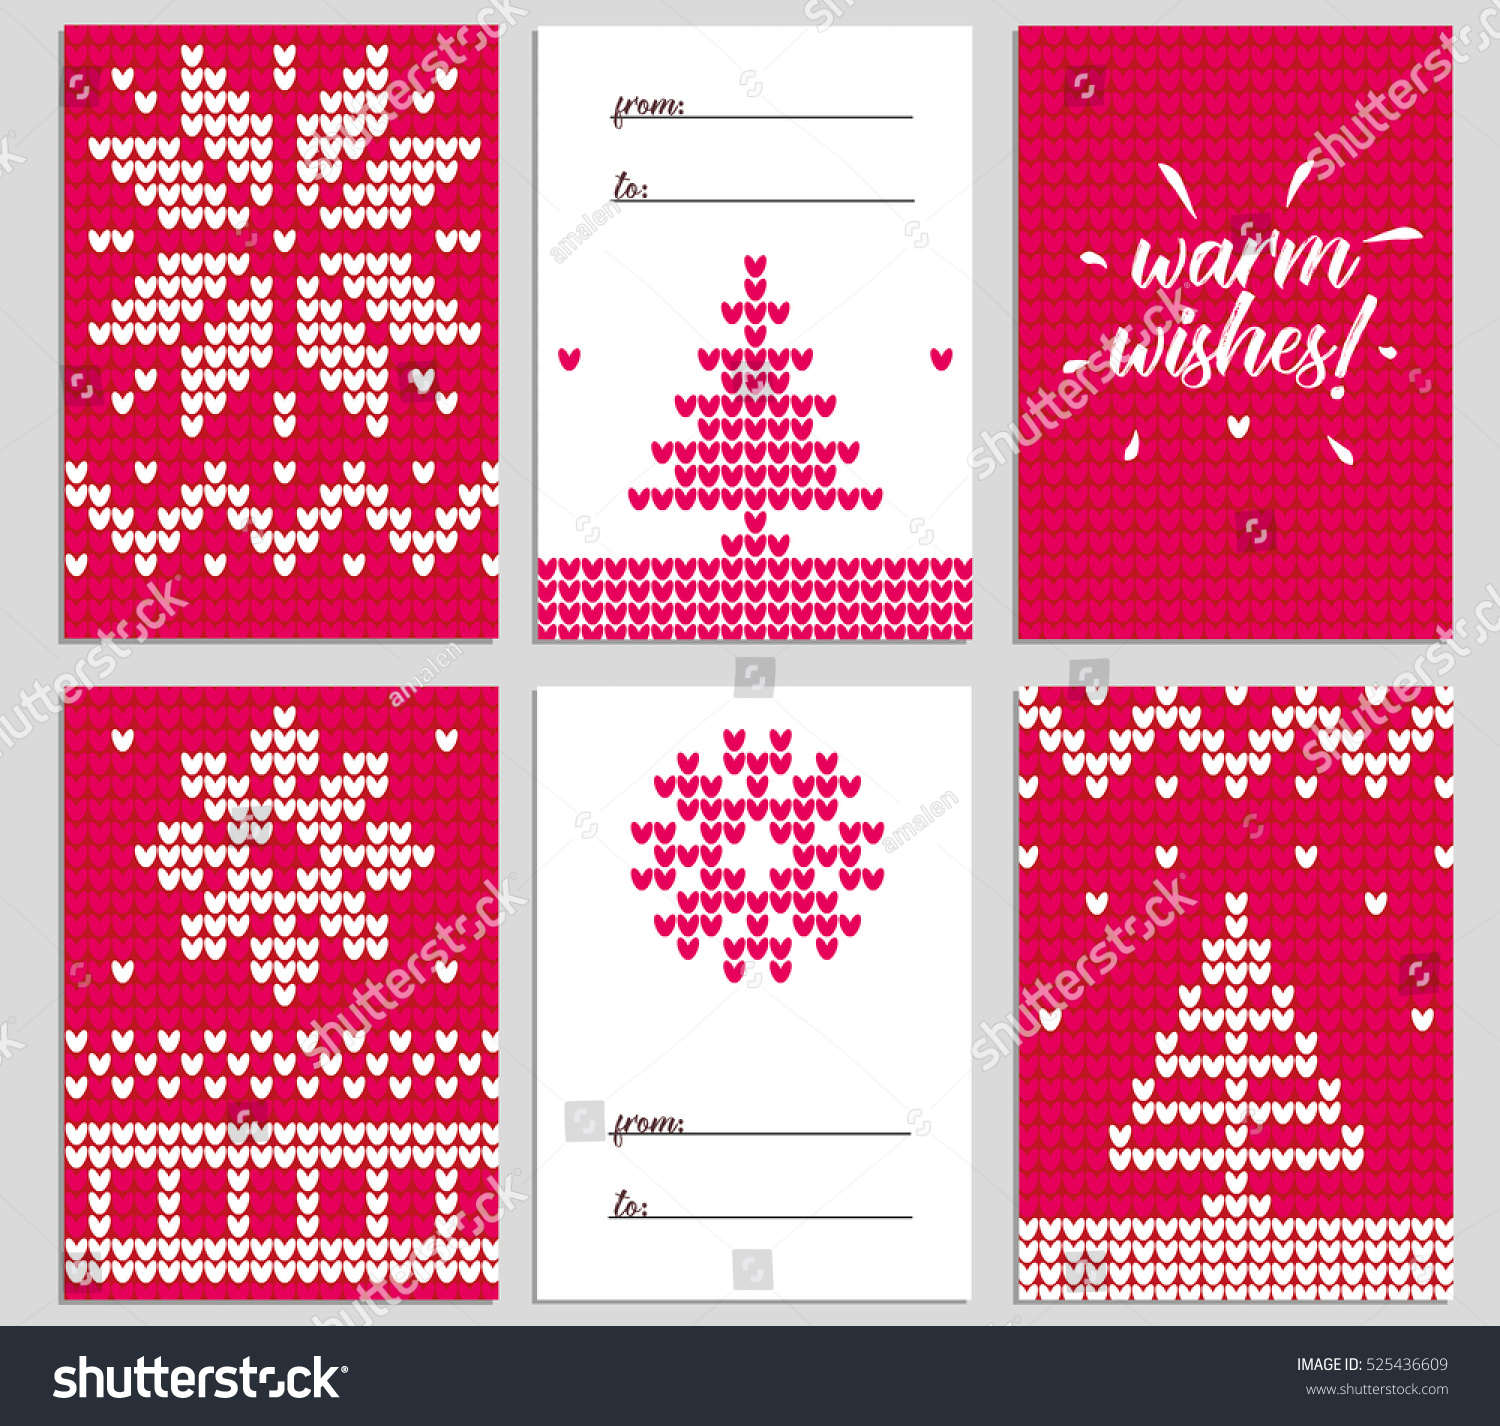 Vector Christmas Background Illustration Knitted Sweater Stock